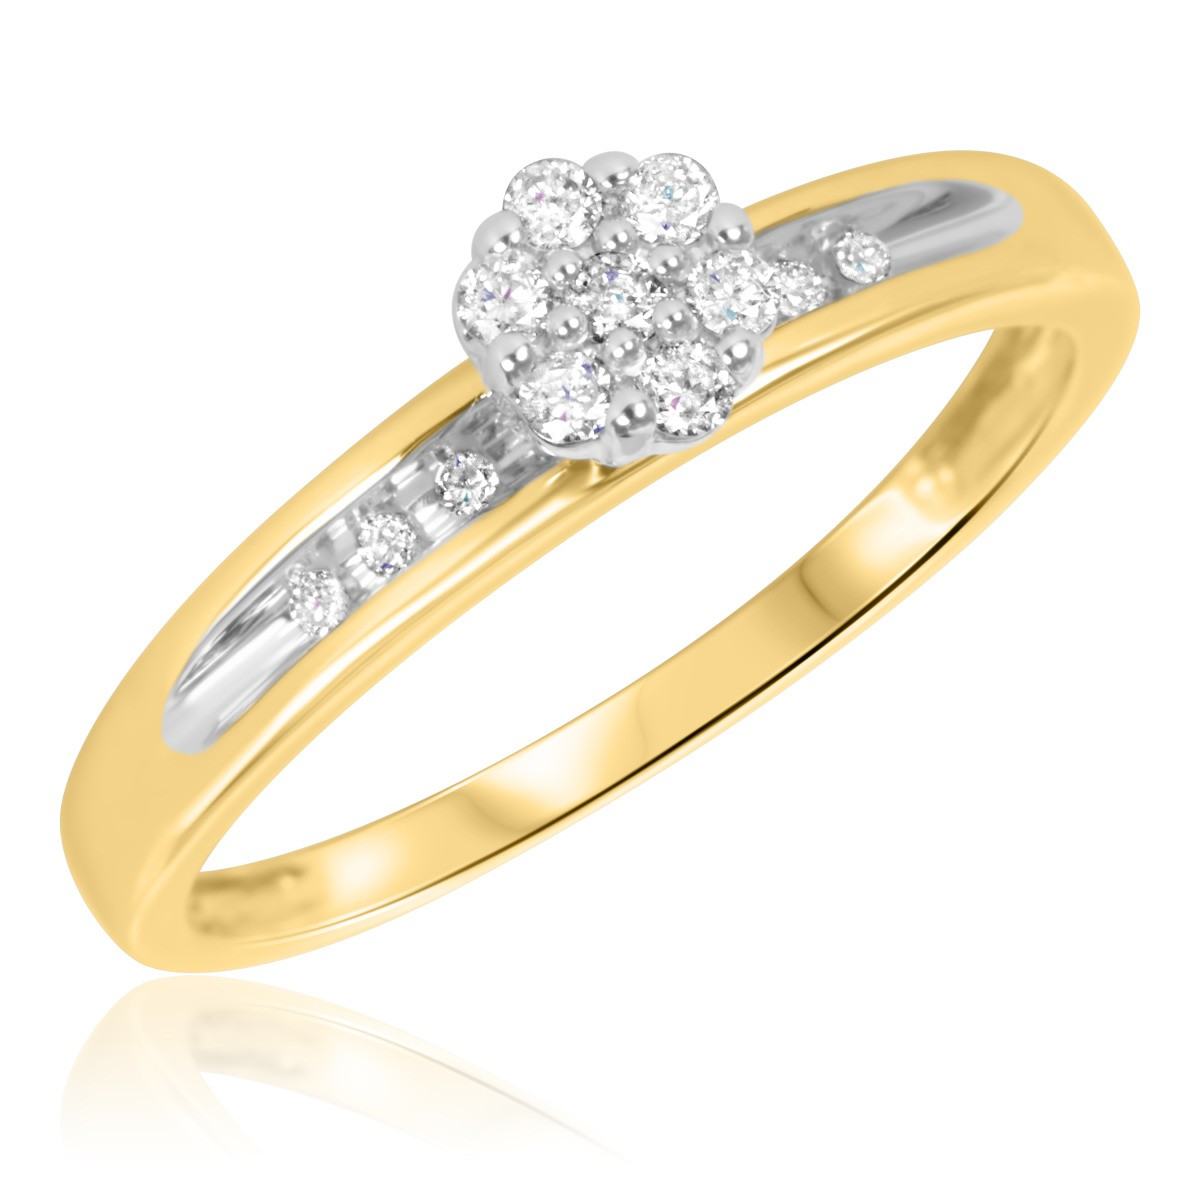 1/6 Carat T.W. Diamond Ladies' Engagement Ring 10K Yellow Gold